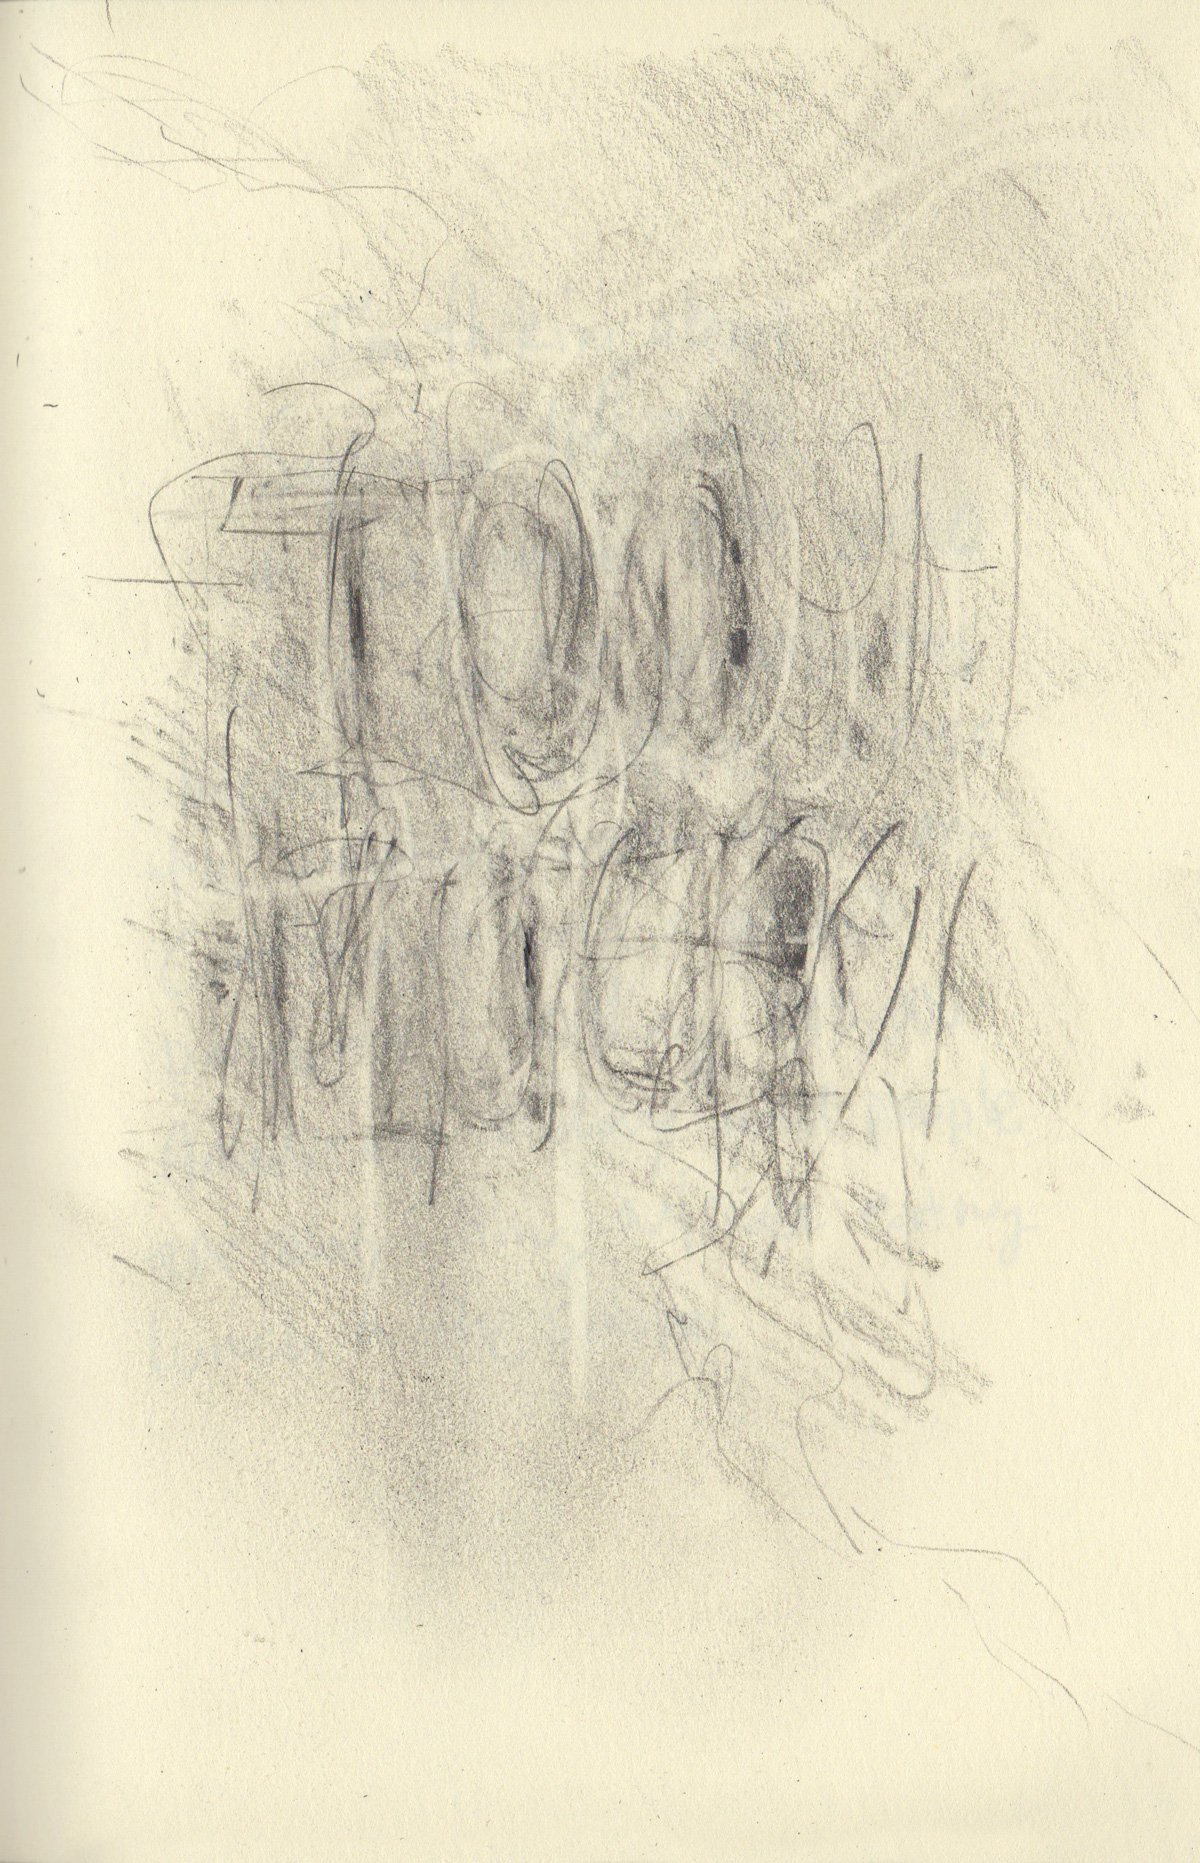 """TOO MUCH 5.5 x 8.25"""" 2020 Pencil on Sketchbook Pages"""